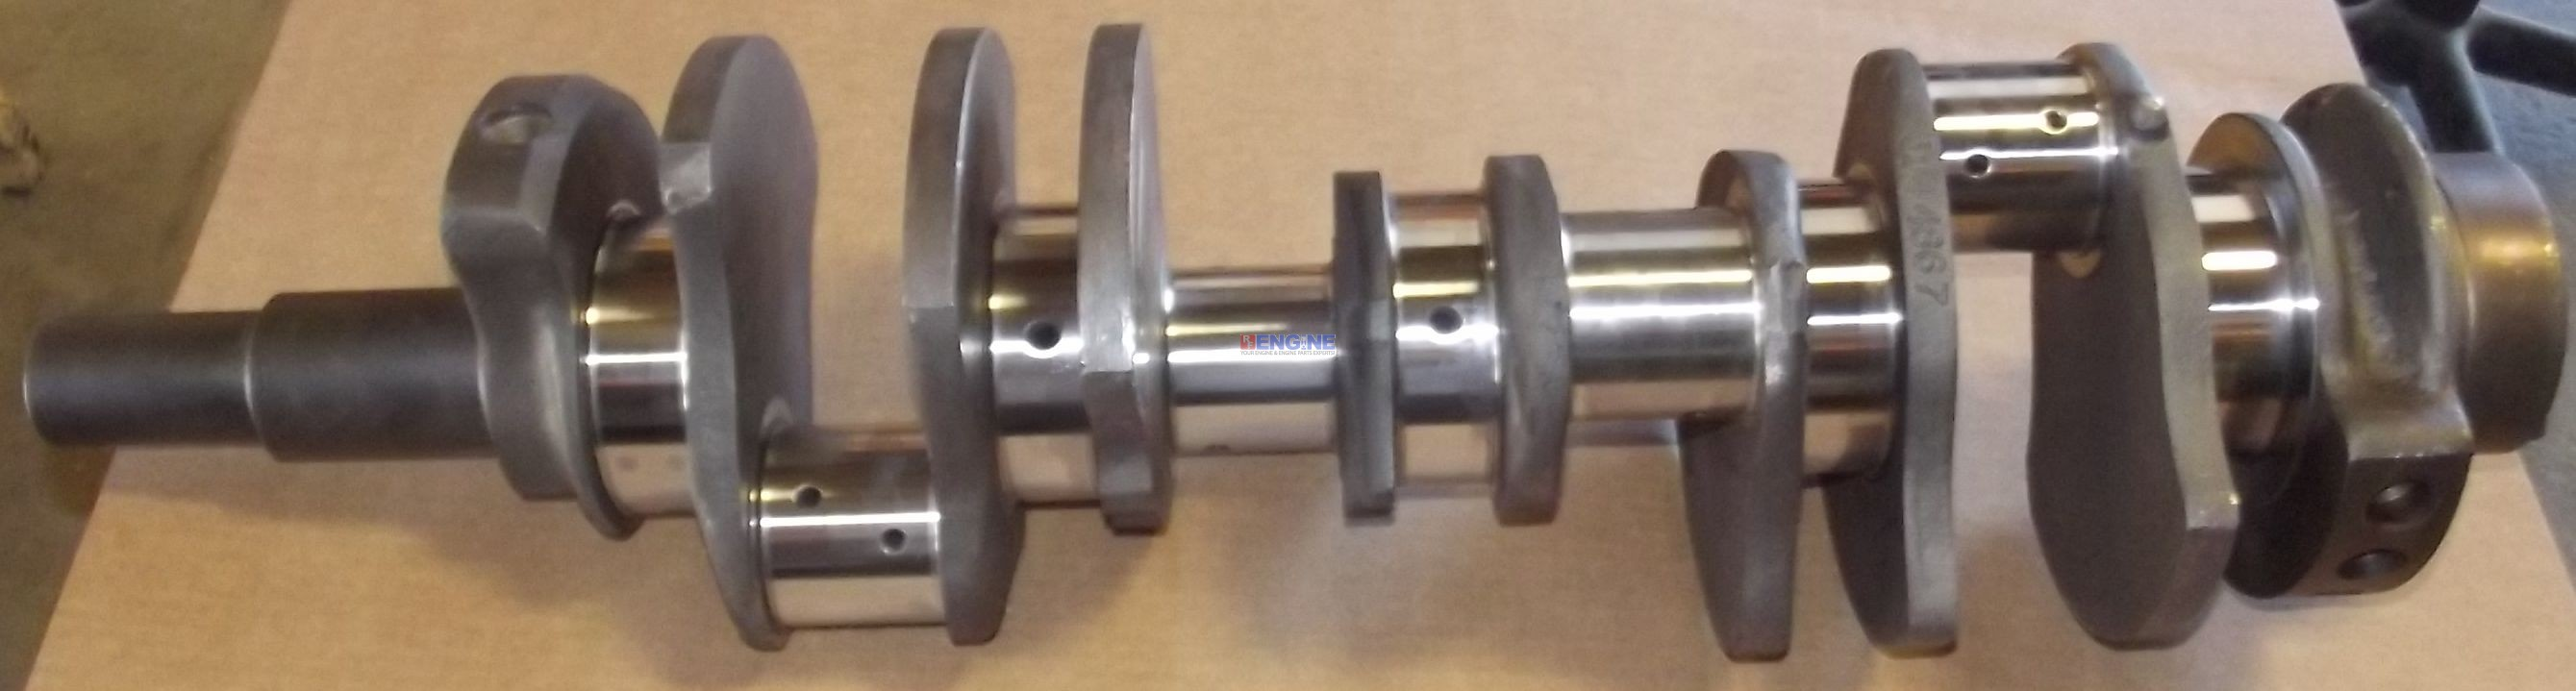 Crankshaft Remachined Detroit Diesel 8V-71 5119906, 5117908, 5144867  Stroke: 5 0